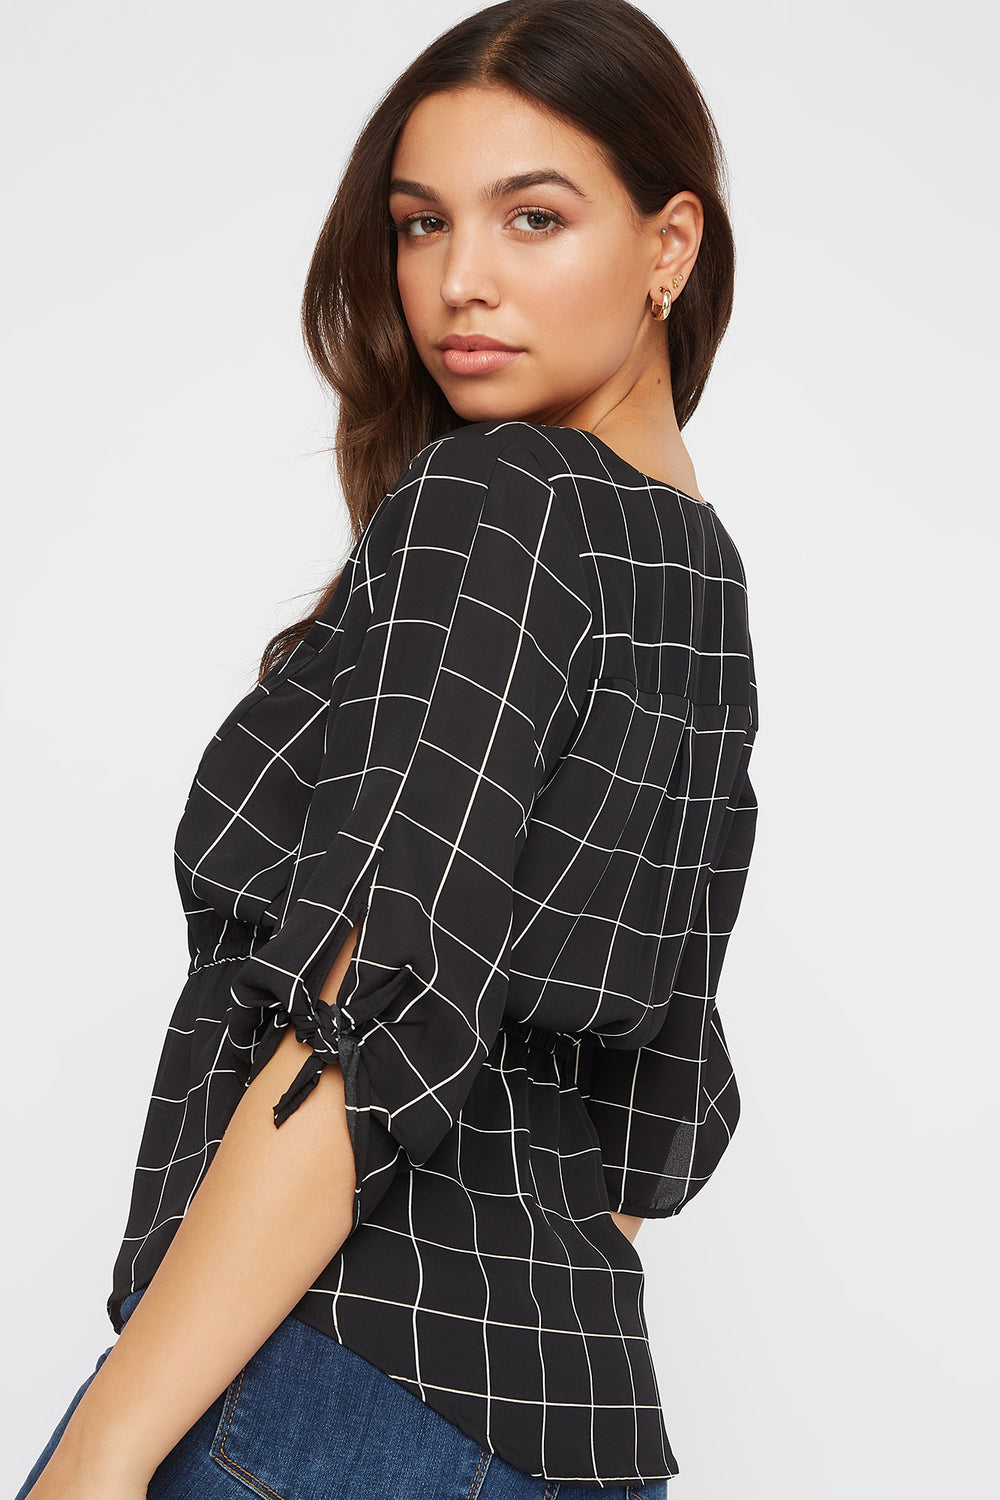 Printed Half-Zip Blouse Black with White